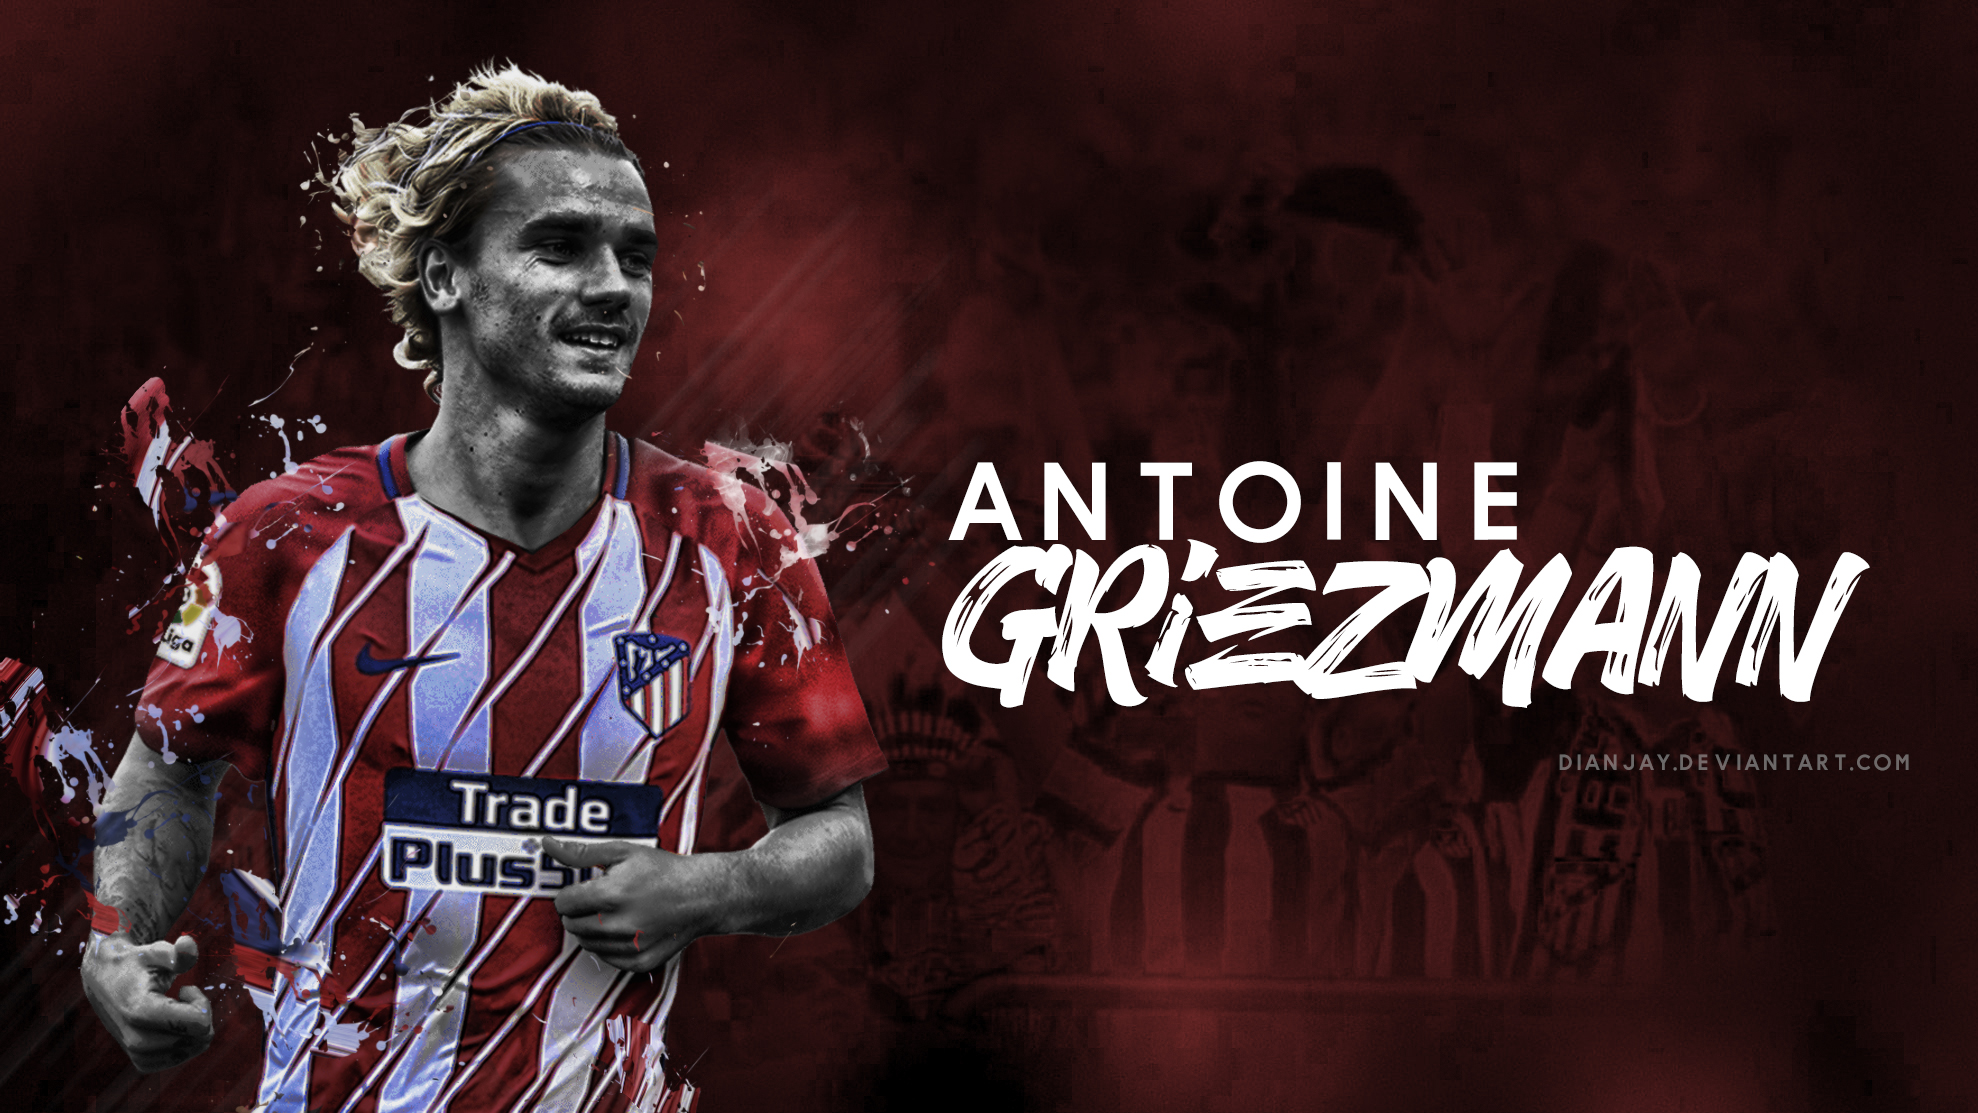 Antoine Griezmann Atletico Madrid Wallpaper by dianjay 1978x1113